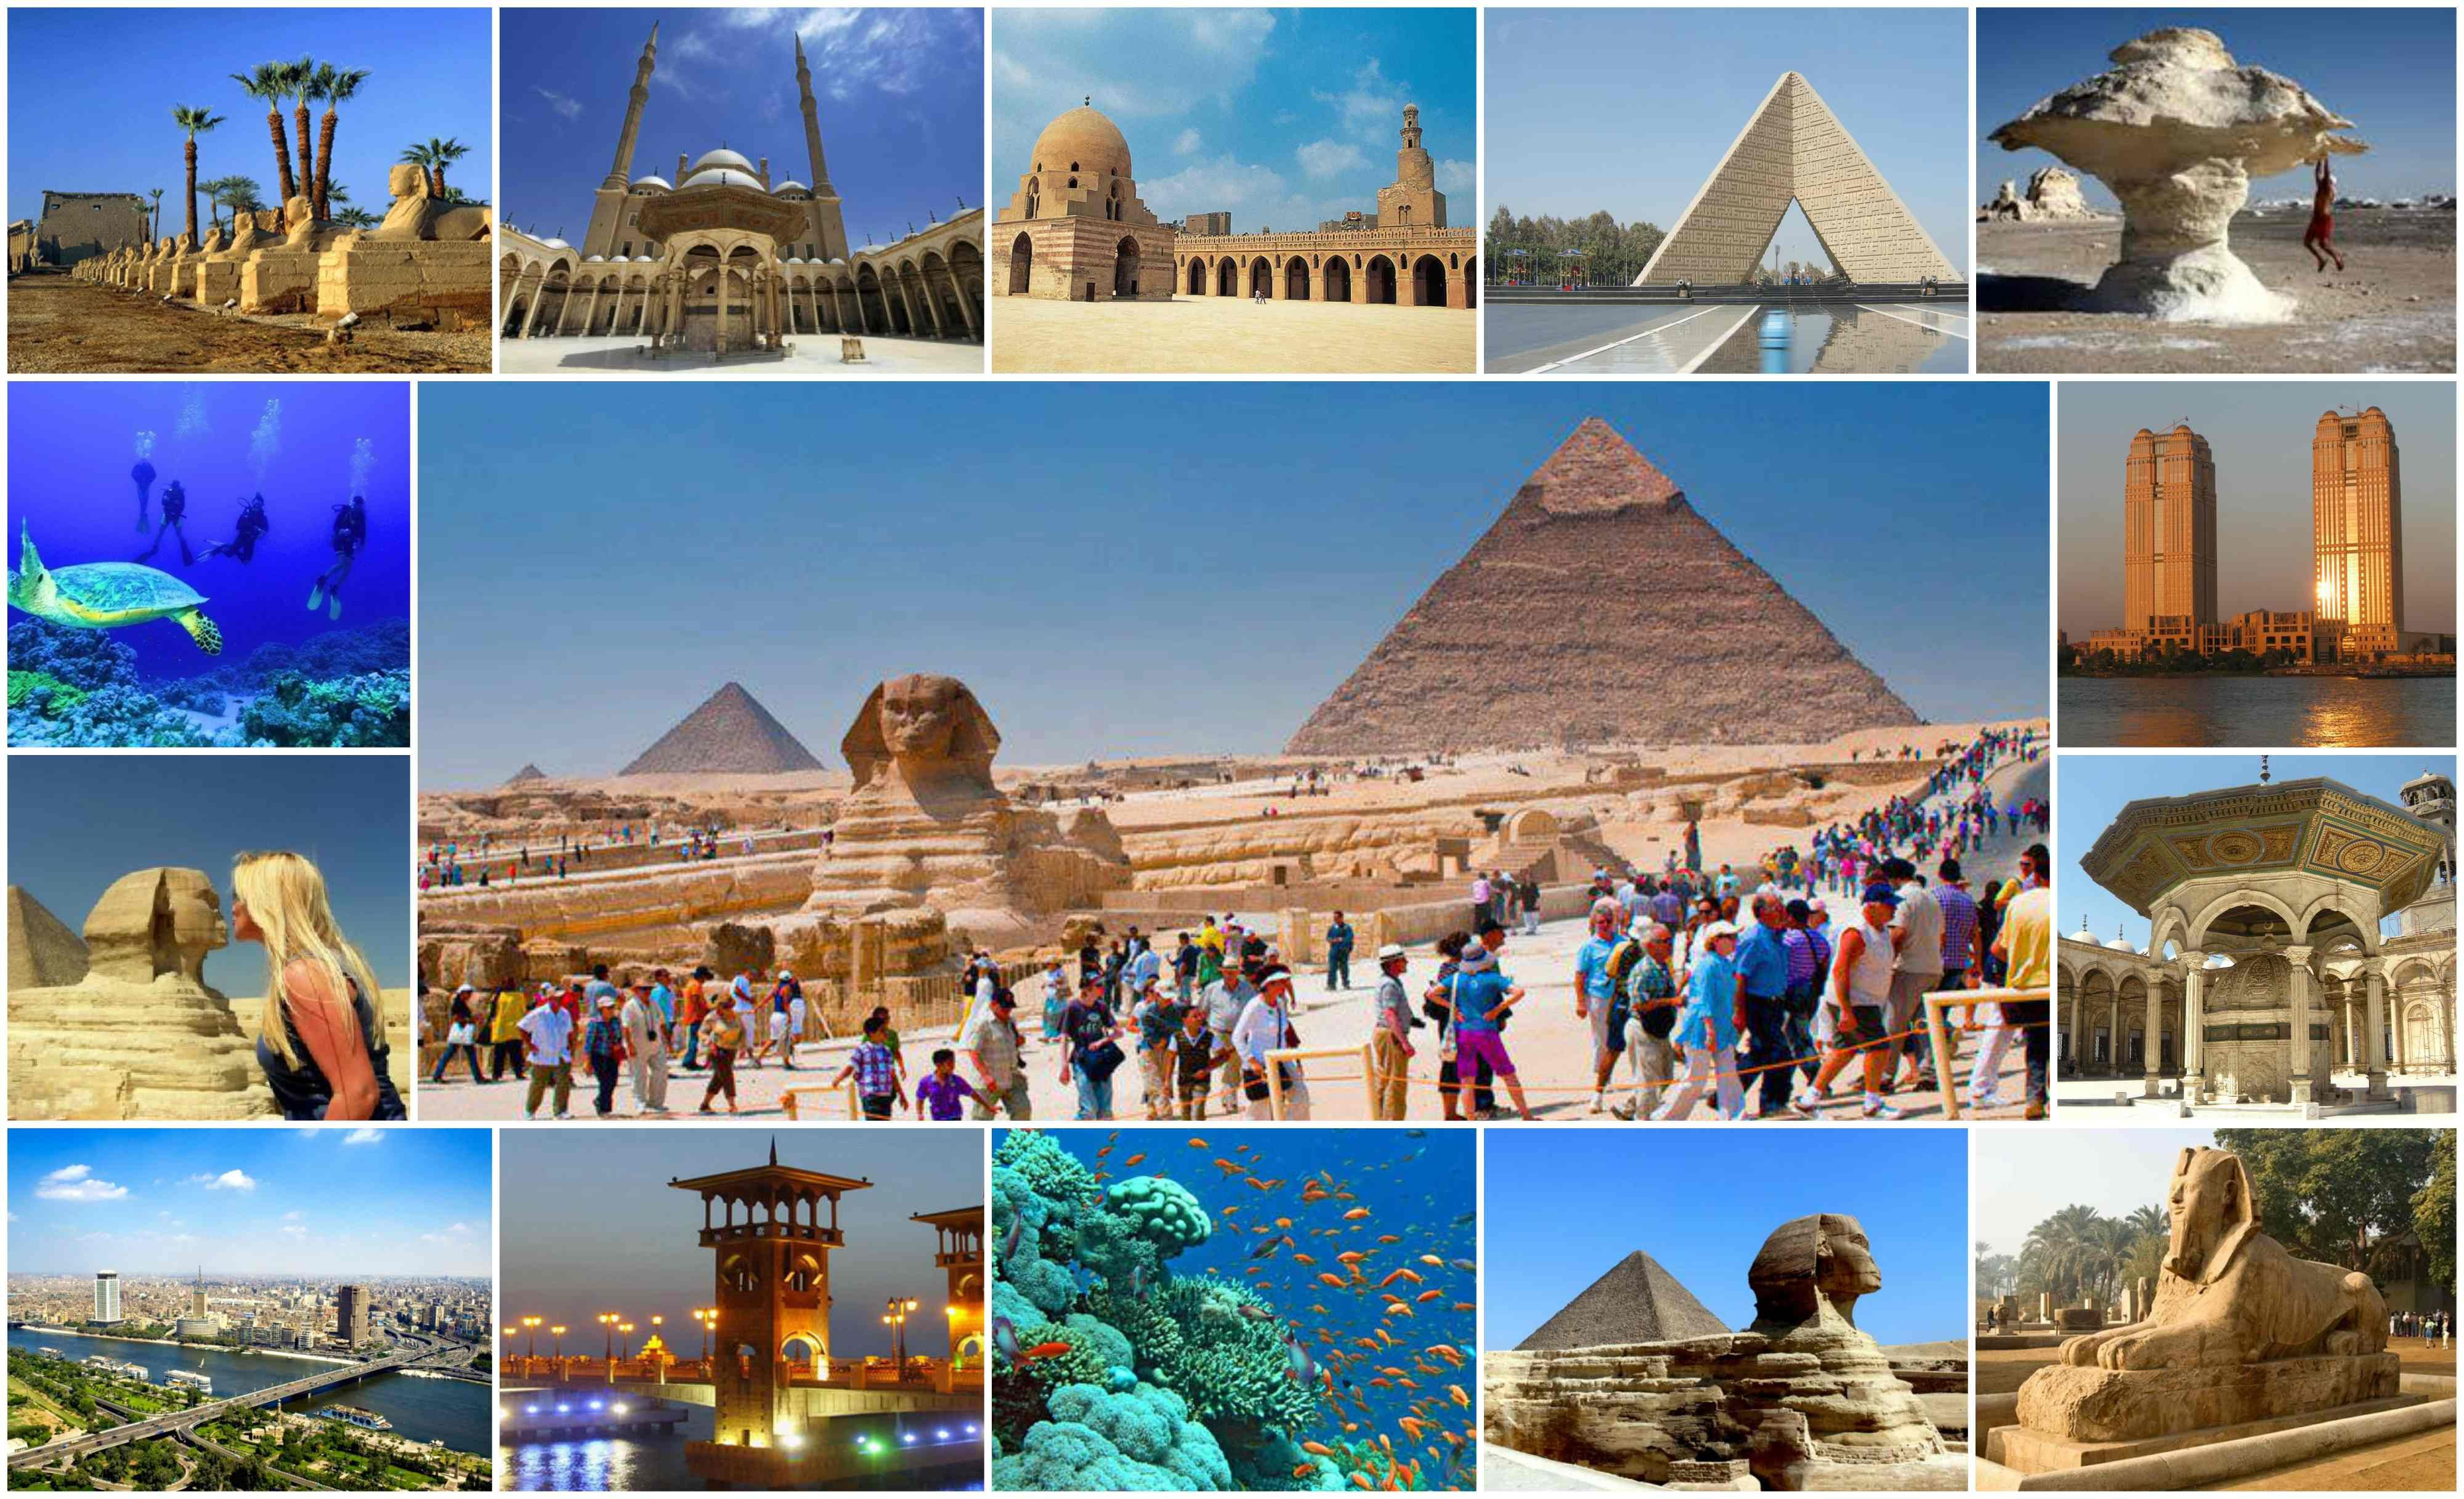 Choose Your Best Touristattractions Of Cairo Egypt And Enjoy The Best Cairosightseeing Tour With Egyptonlinetours Ht Egypt Tours Visit Egypt Egypt Travel